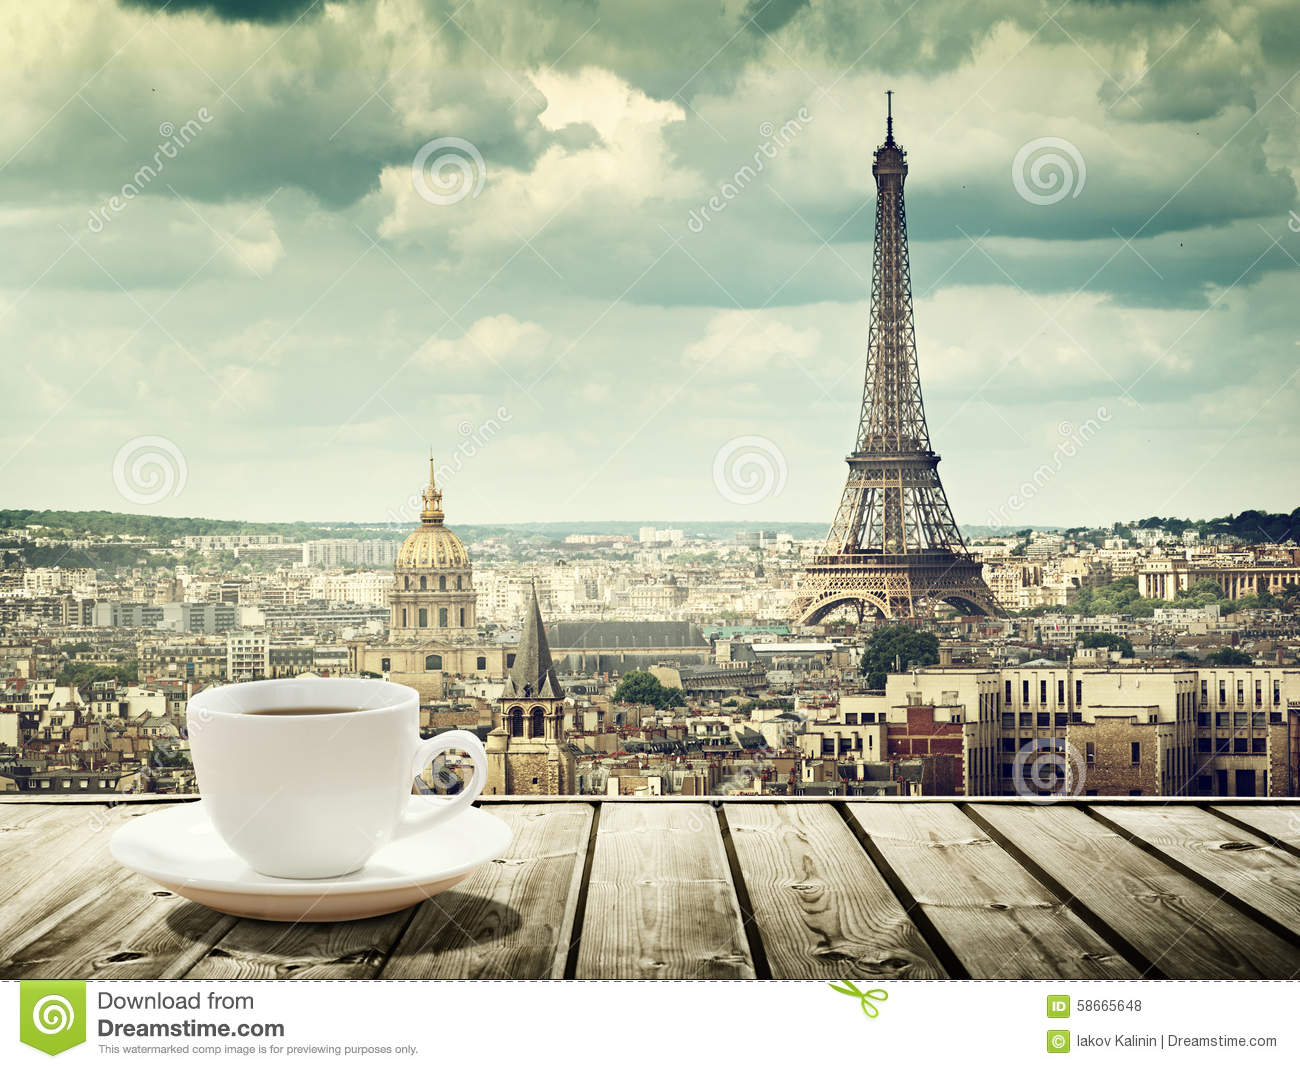 Outdoor cafe in paris with tower in background - Background With Cup Of Coffee And Eiffel Tower In Paris Royalty Free Stock Photos